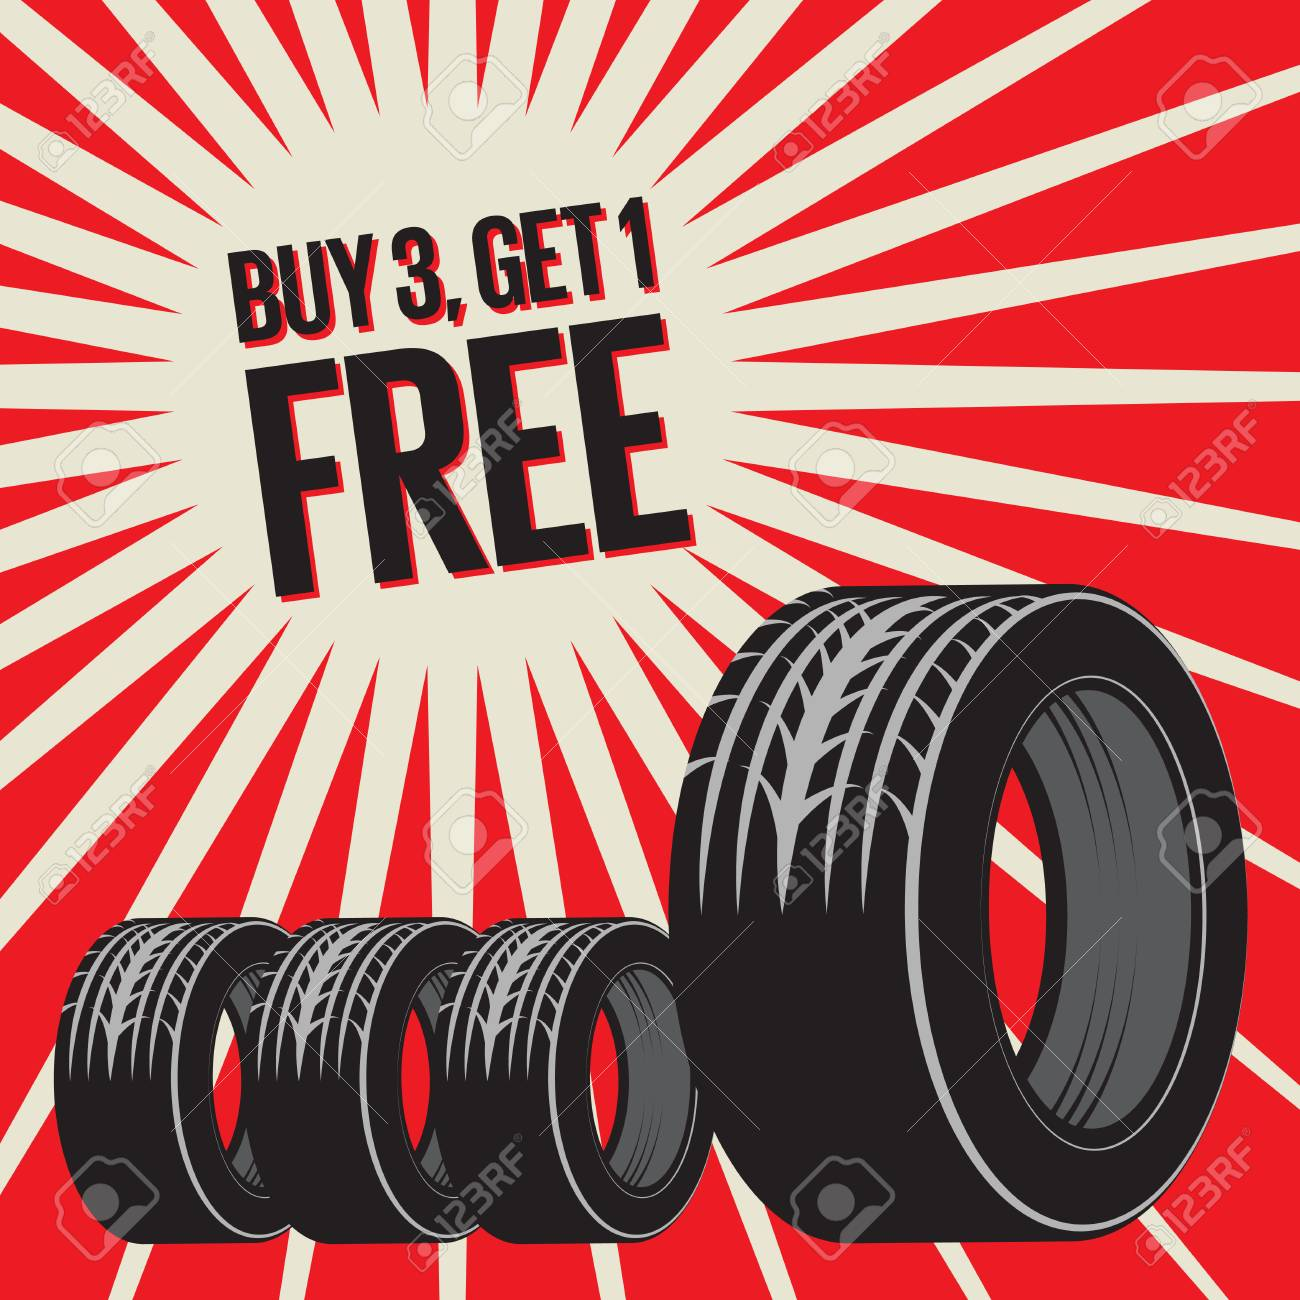 Bang Burst Tires Business Concept With Text Buy 3 Get 1 Free